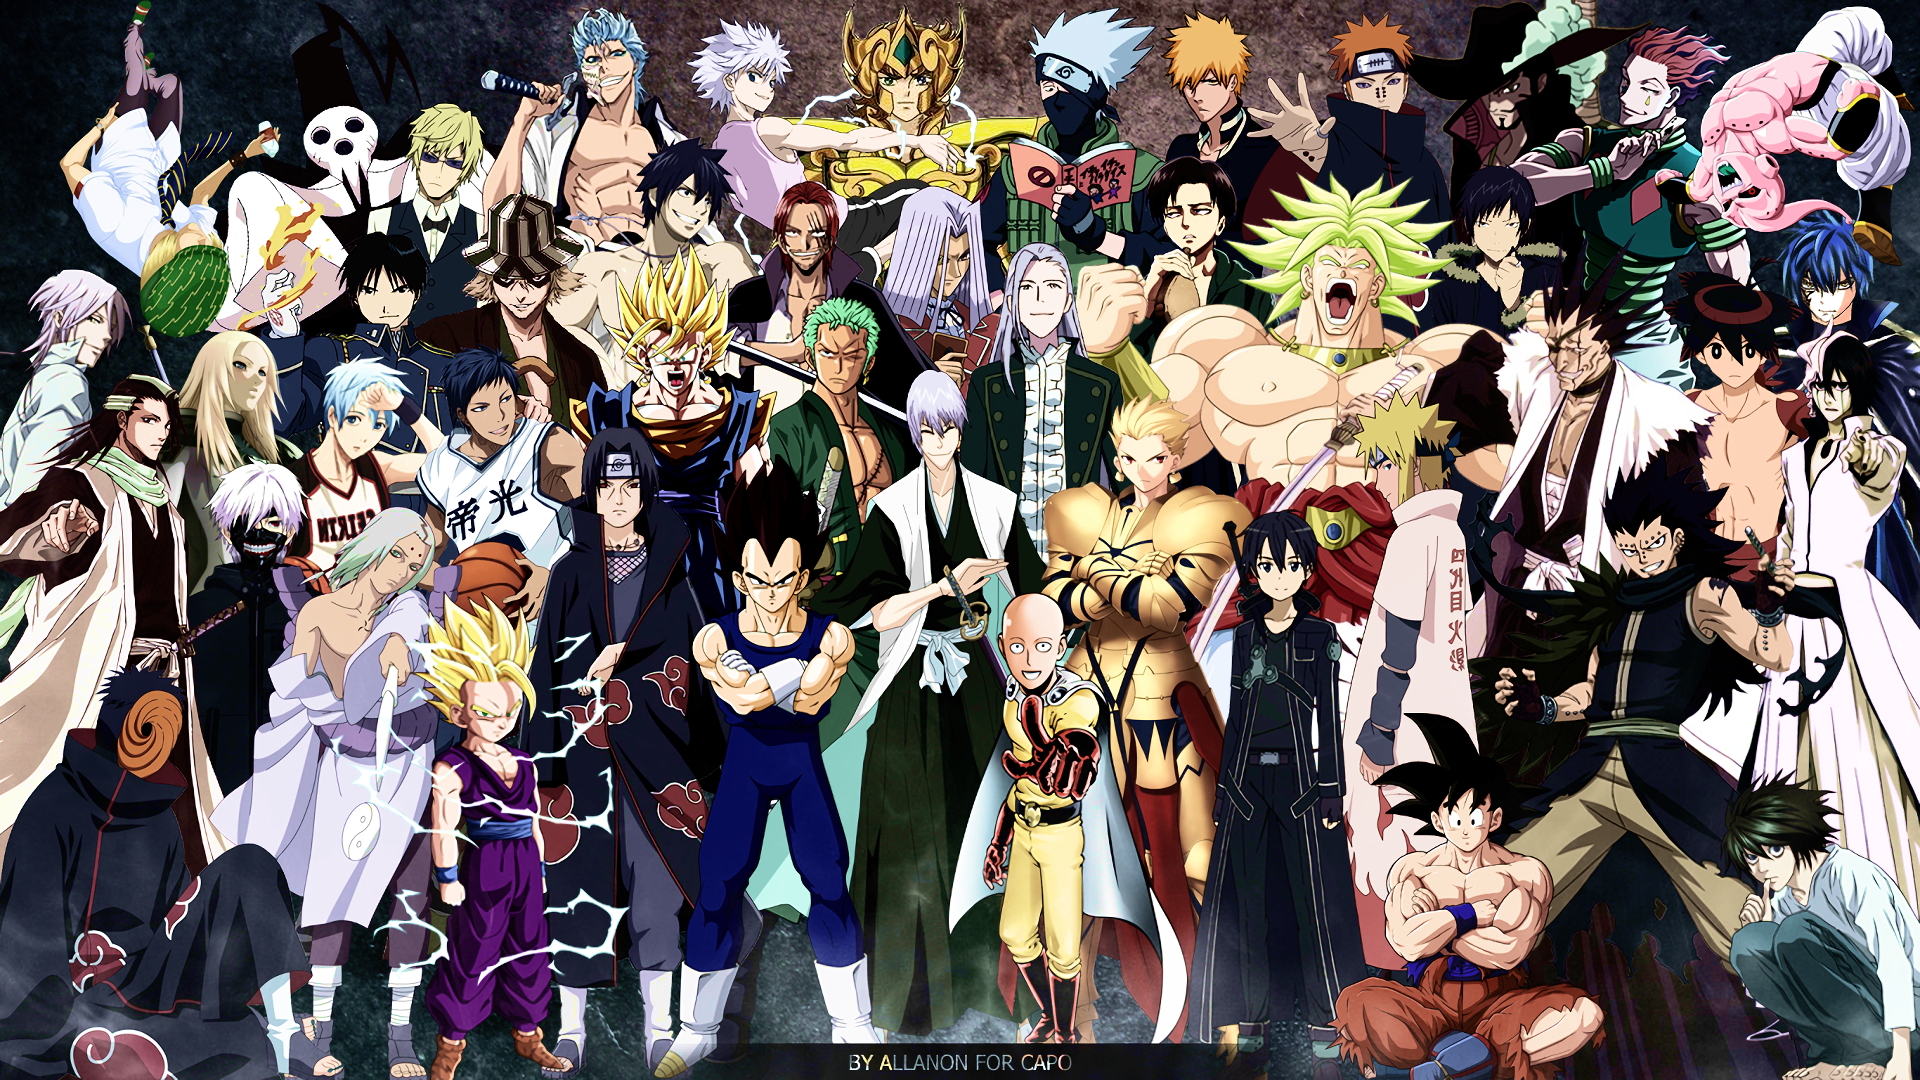 Anime - Crossover  Pain (Naruto) Kakashi Hatake Zoro Roronoa Tetsuya Kuroko Jellal Fernandes Gray Fullbuster Goku Ichigo Kurosaki Shizuo Heiwajima Saitama (One-Punch Man) Ken Kaneki Levi Ackerman Kirito (Sword Art Online) Kazuto Kirigaya Obito Uchiha Gajeel Redfox Ulquiorra Cifer Broly (Dragon Ball) Minato Namikaze Gilgamesh (Fate Series) L (Death Note) Vegeta (Dragon Ball) Majin Buu Daiki Aomine Fairy Tail Naruto Bleach Dragon Ball Dragon Ball Z Fullmetal Alchemist Sword Art Online Durarara!! Izaya Orihara Attack on Titan Shingeki No Kyojin Tokyo Ghoul Fate/Stay Night Fate/Zero Hunter × Hunter Death Note One Punch-Man Kuroko's Basketball Byakuya Kuchiki Kenpachi Zaraki Wallpaper